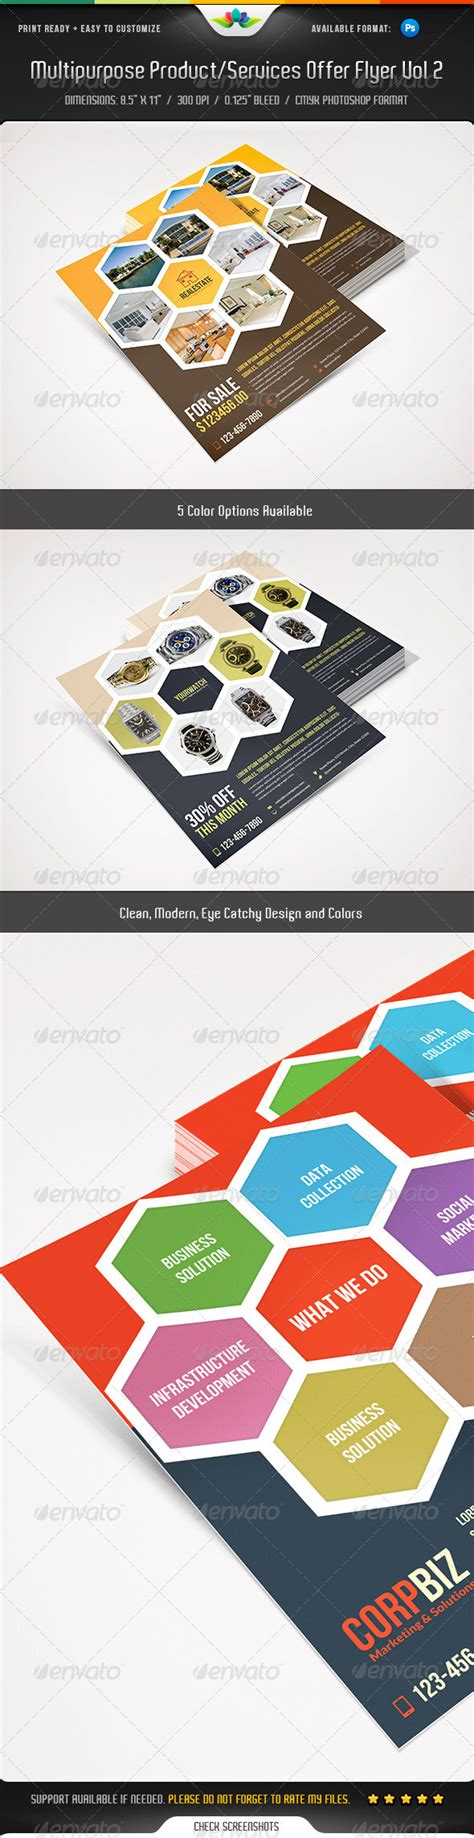 Template Multipurpose Vol Ii Brosur Banner Katalog Flyer Template Ikl multipurpose product services offer flyer vol 2 graphicriver